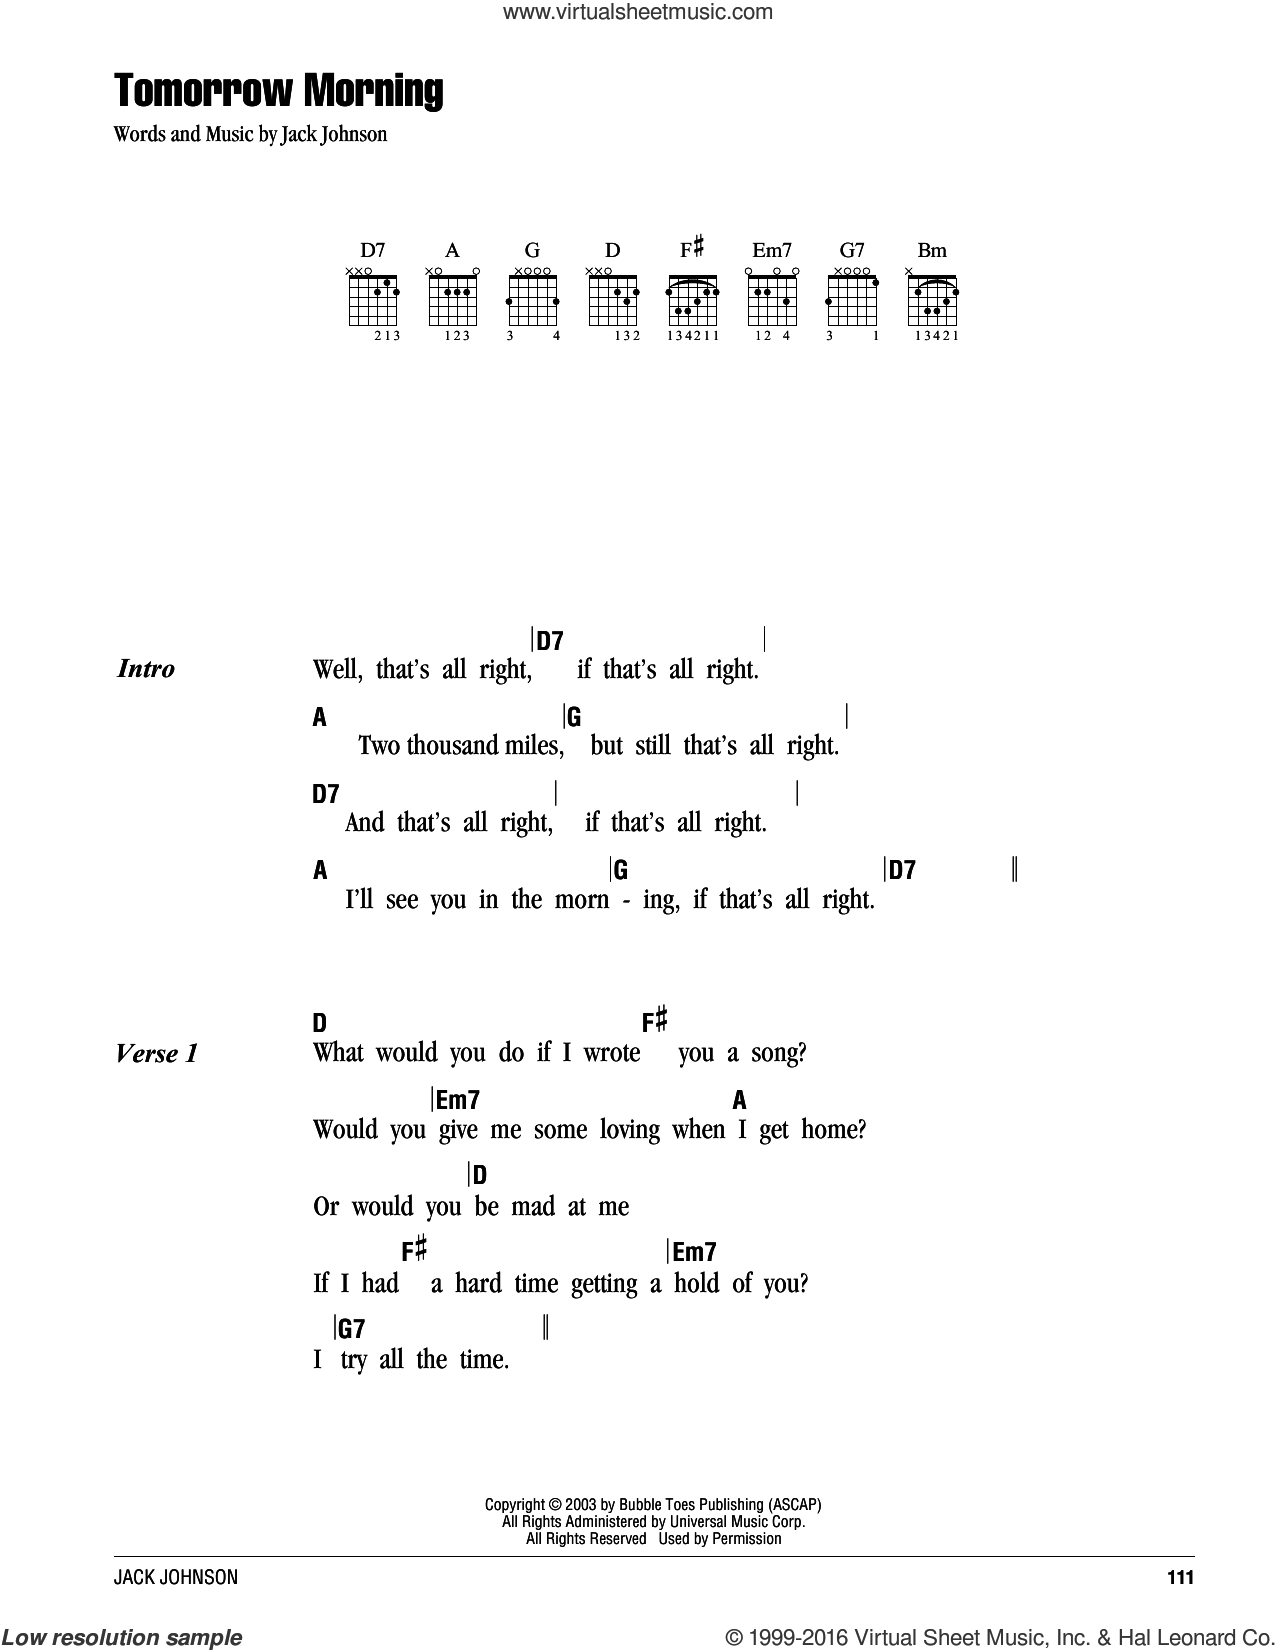 Tomorrow Morning sheet music for guitar (chords) by Jack Johnson. Score Image Preview.